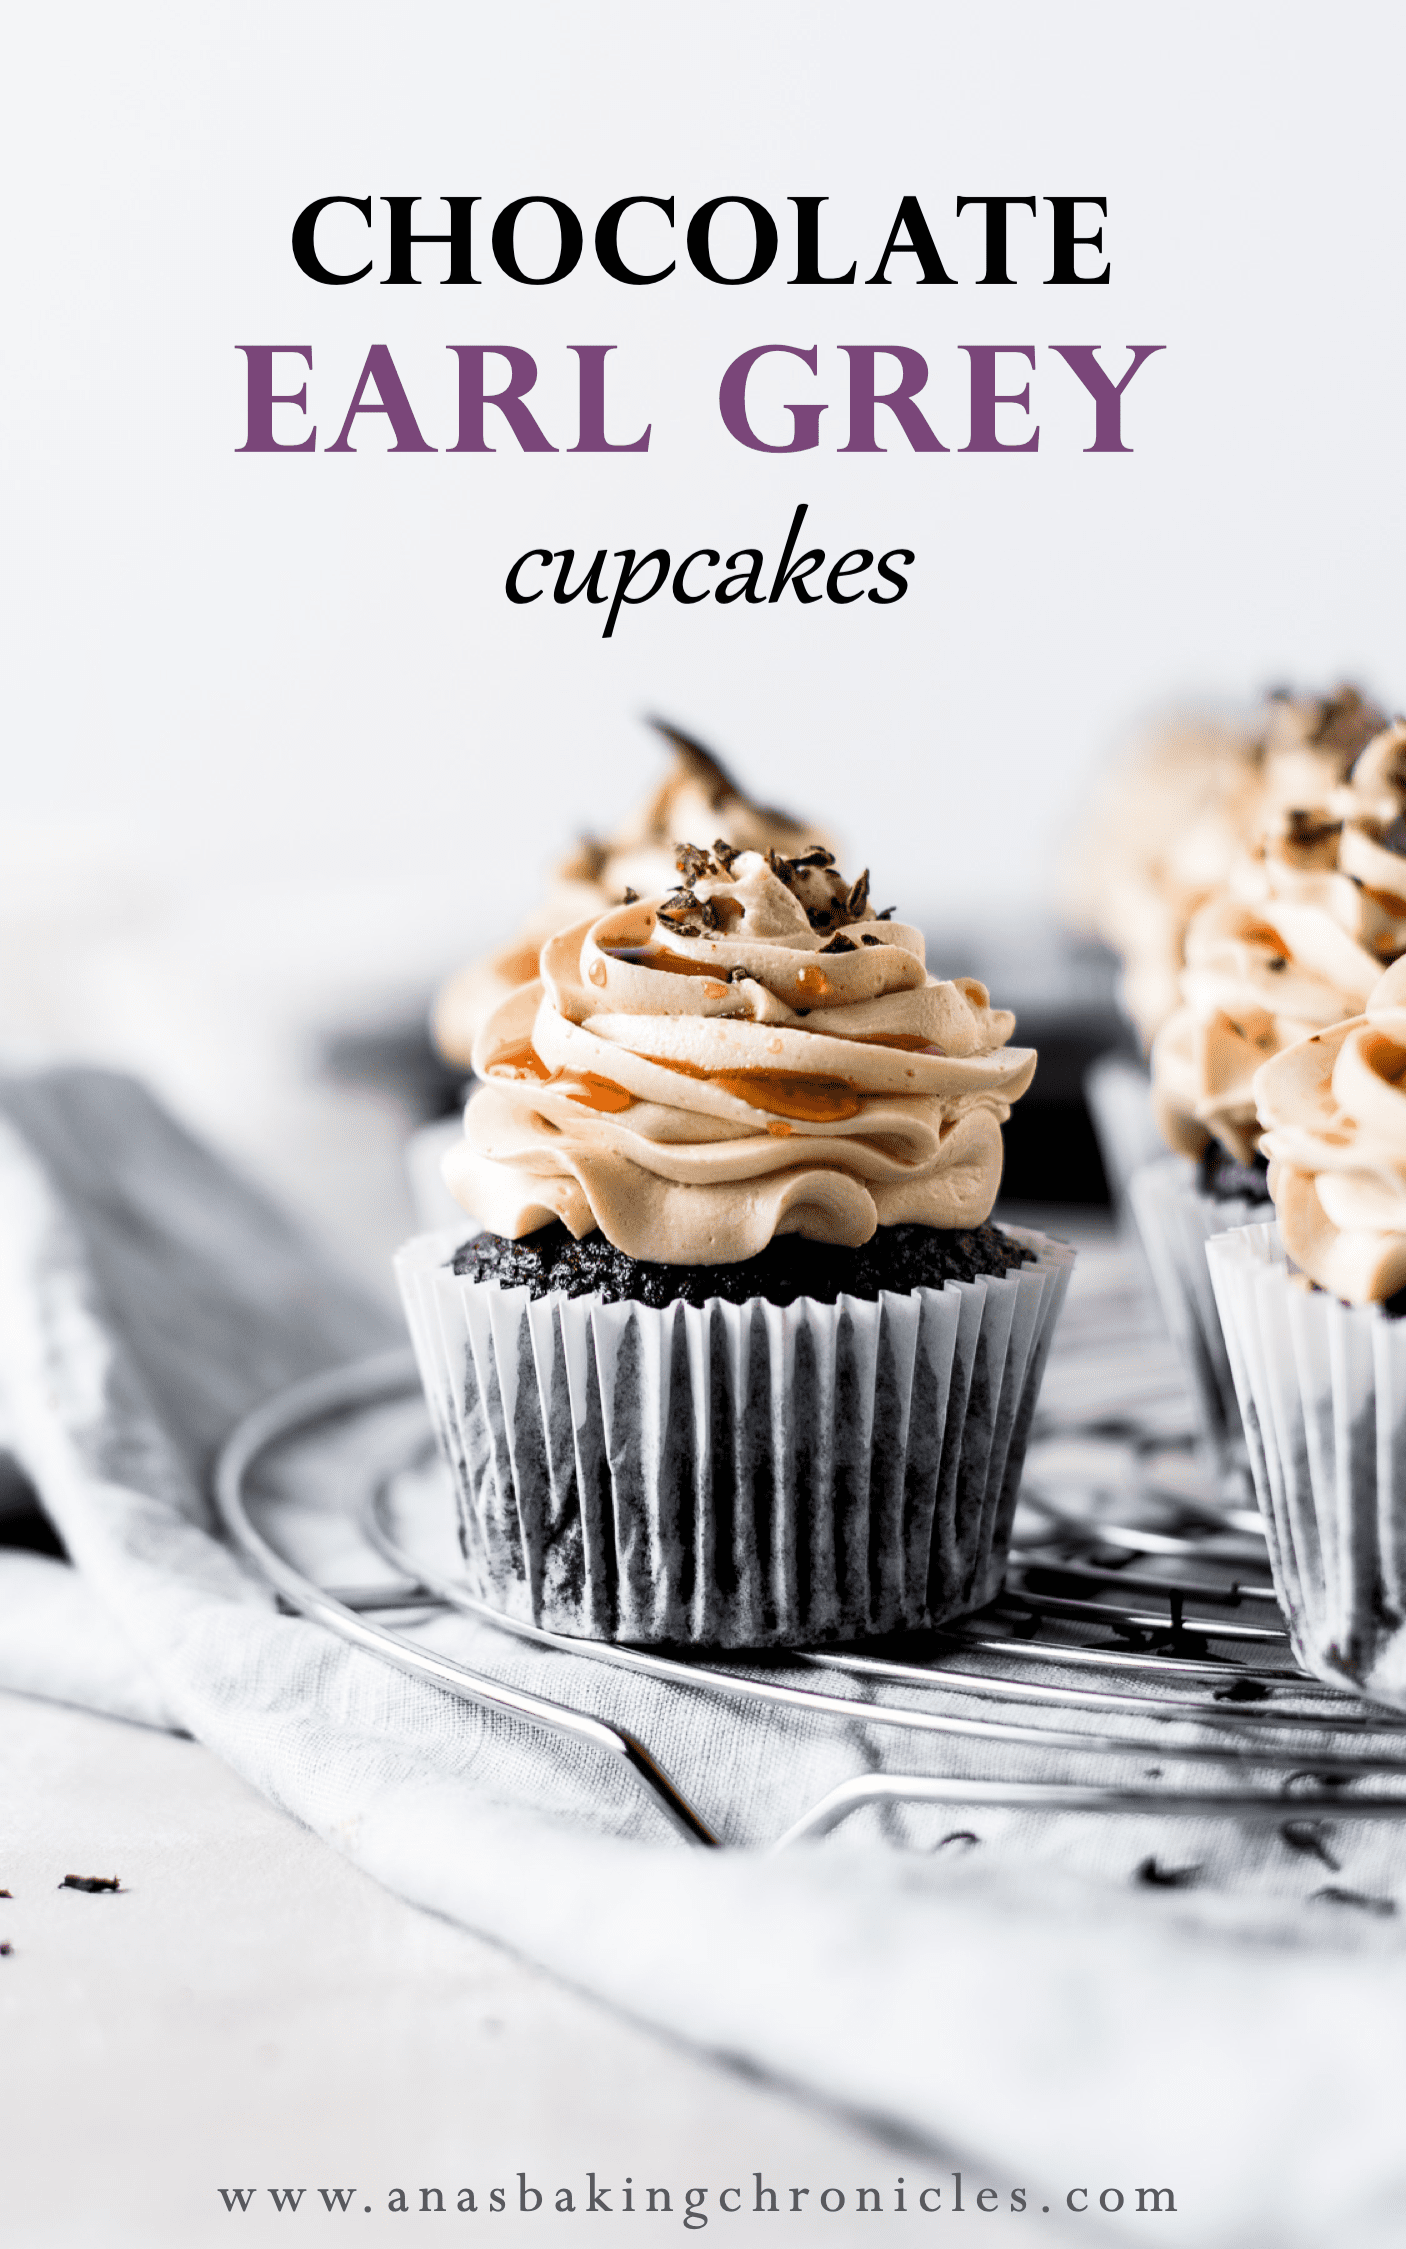 Rich and moist chocolate cupcakes paired with delicious, silky Earl Grey buttercream frosting and drizzled with homemade Earl Grey sugar syrup. ⎪www.anasbakingchronicles.com